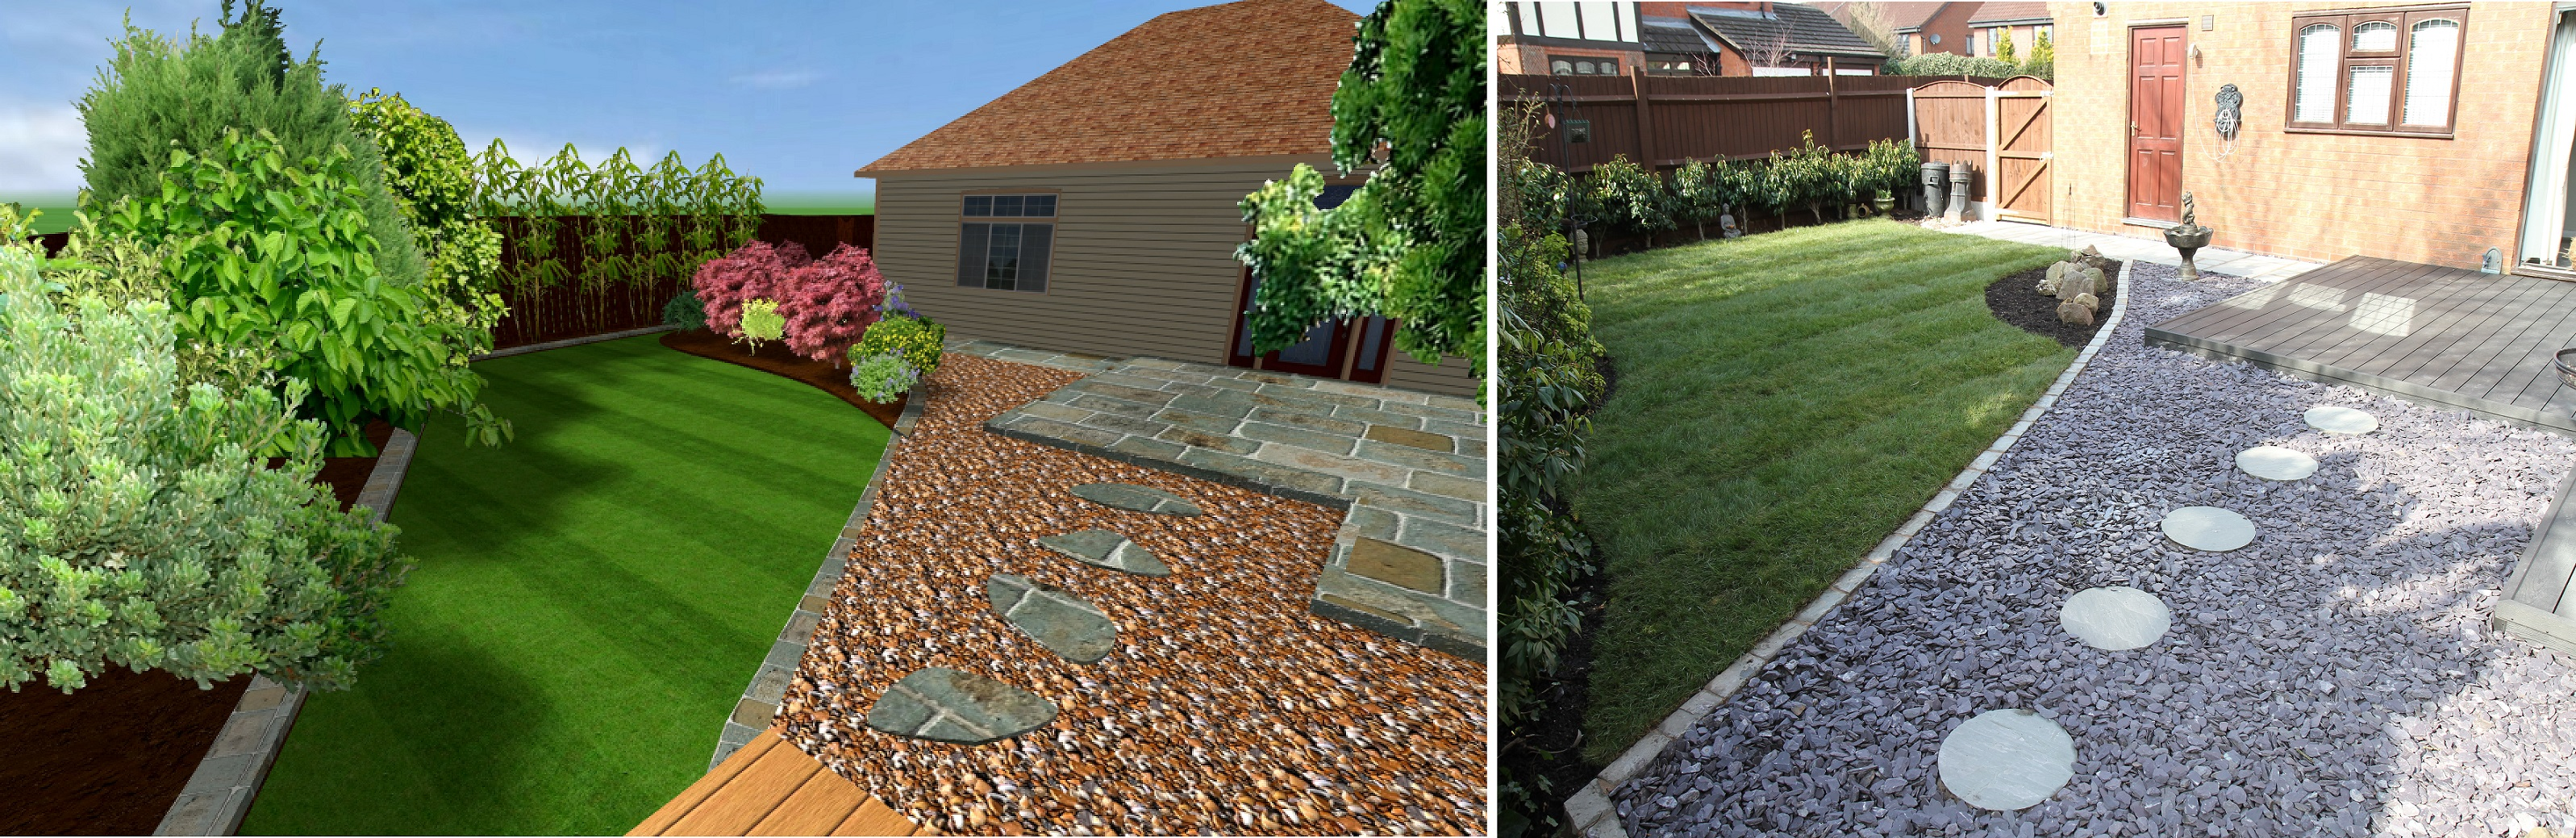 Landscaping in Newcastle under Lyme | Blue Iris Landscapes